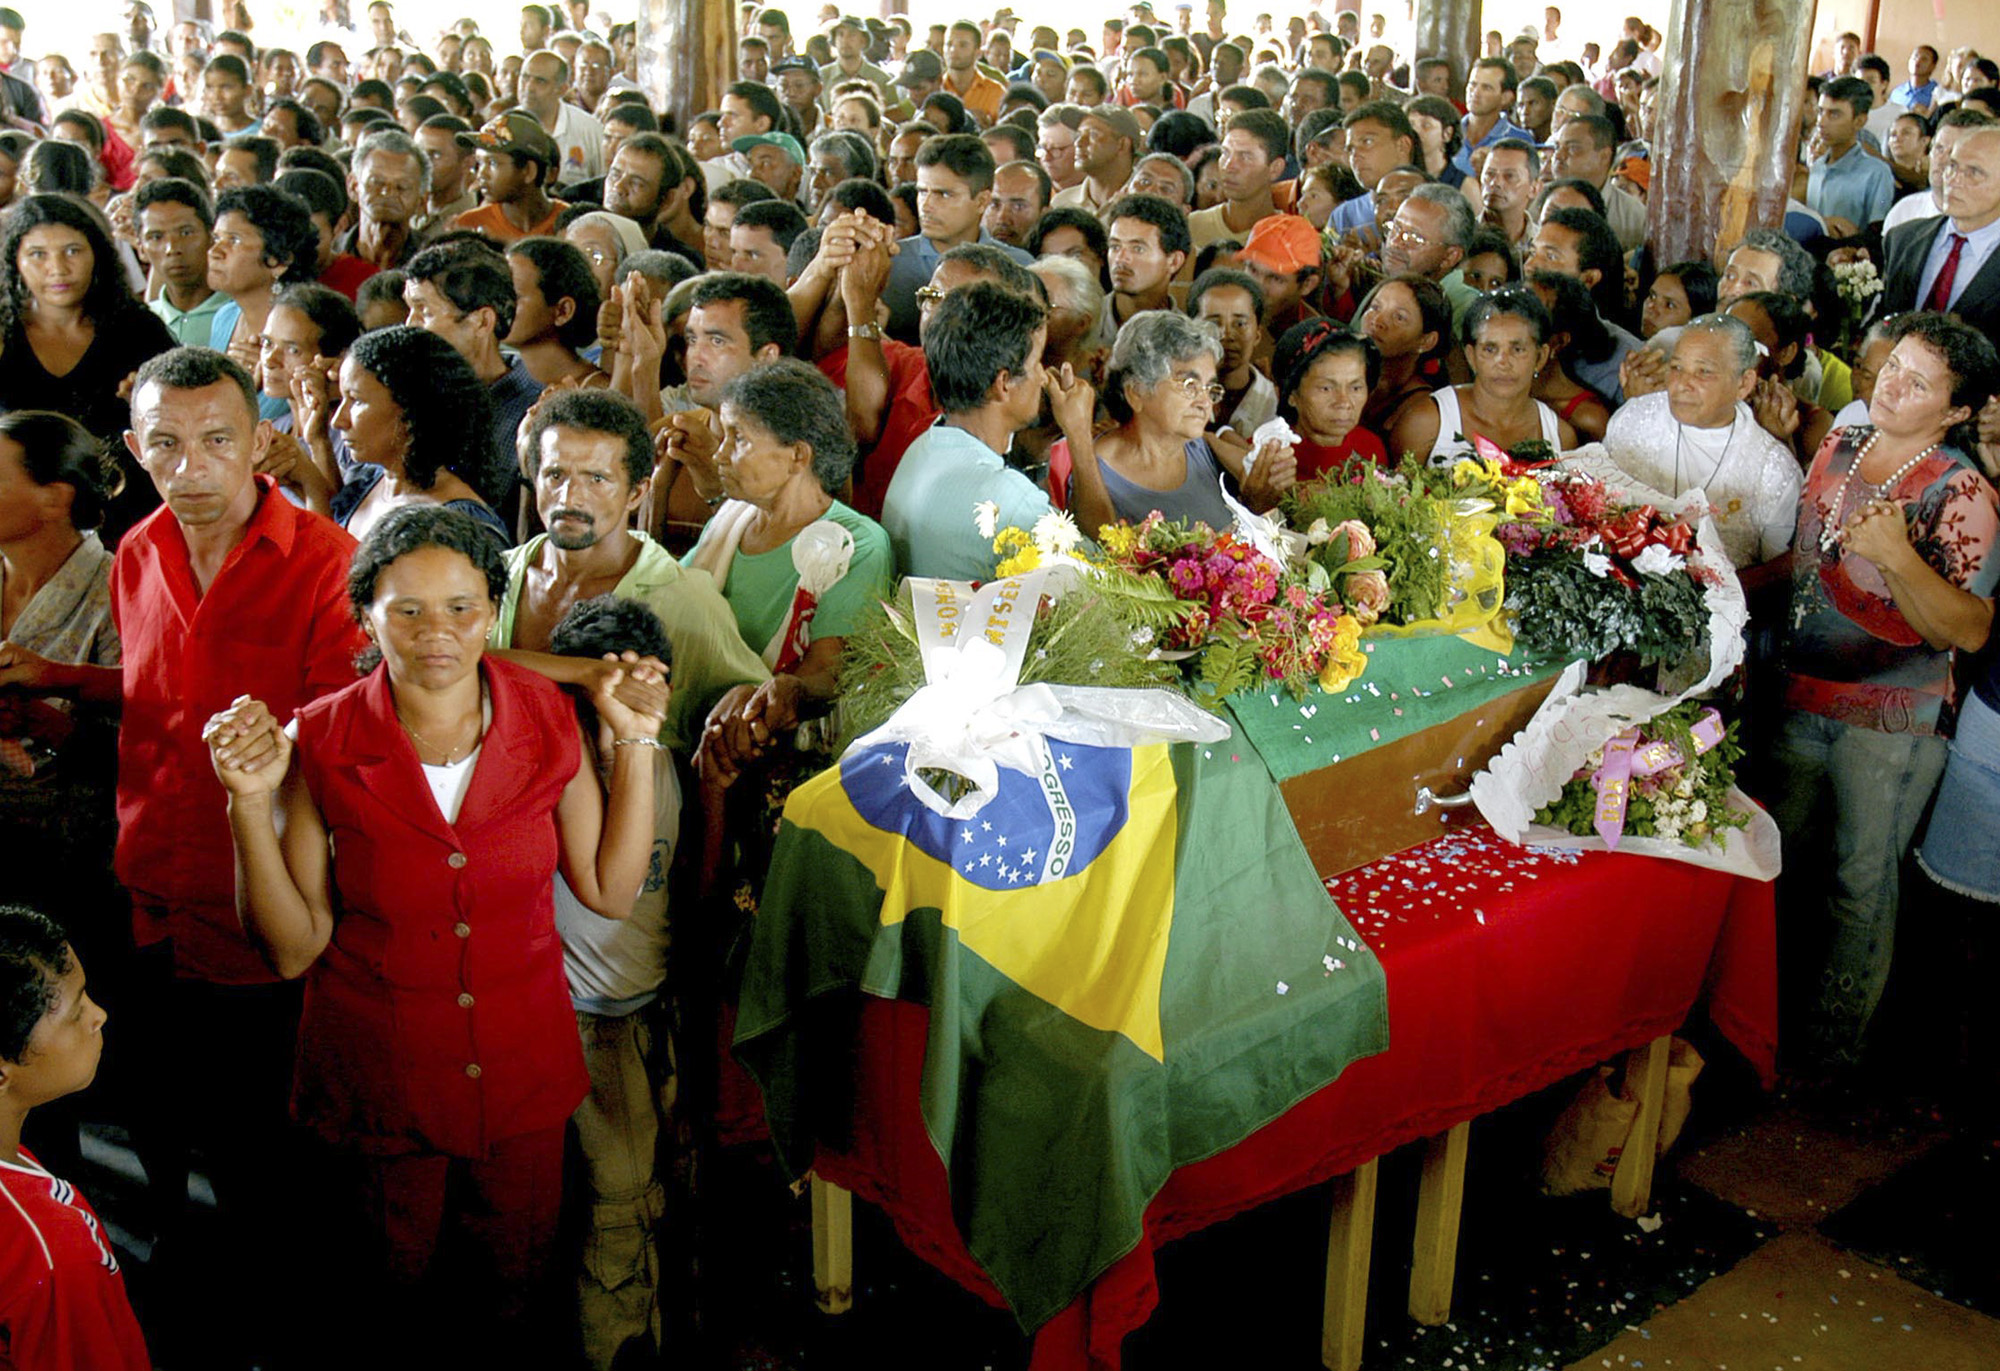 People gather during the wake of Dorothy Stang whose casket is drapped in a Brazilian flag in Anapu on Saturday Feb. 15, 2005. Stang, 73, was shot dead on Feb. 12, 2005, in a dispute with an influential rancher in the eastern Amazon state of Para, on the frontier of forest and development, where powerful interests collide with the Amazon's poor. (AP Photo/Paulo Santos) **EFE OUT**